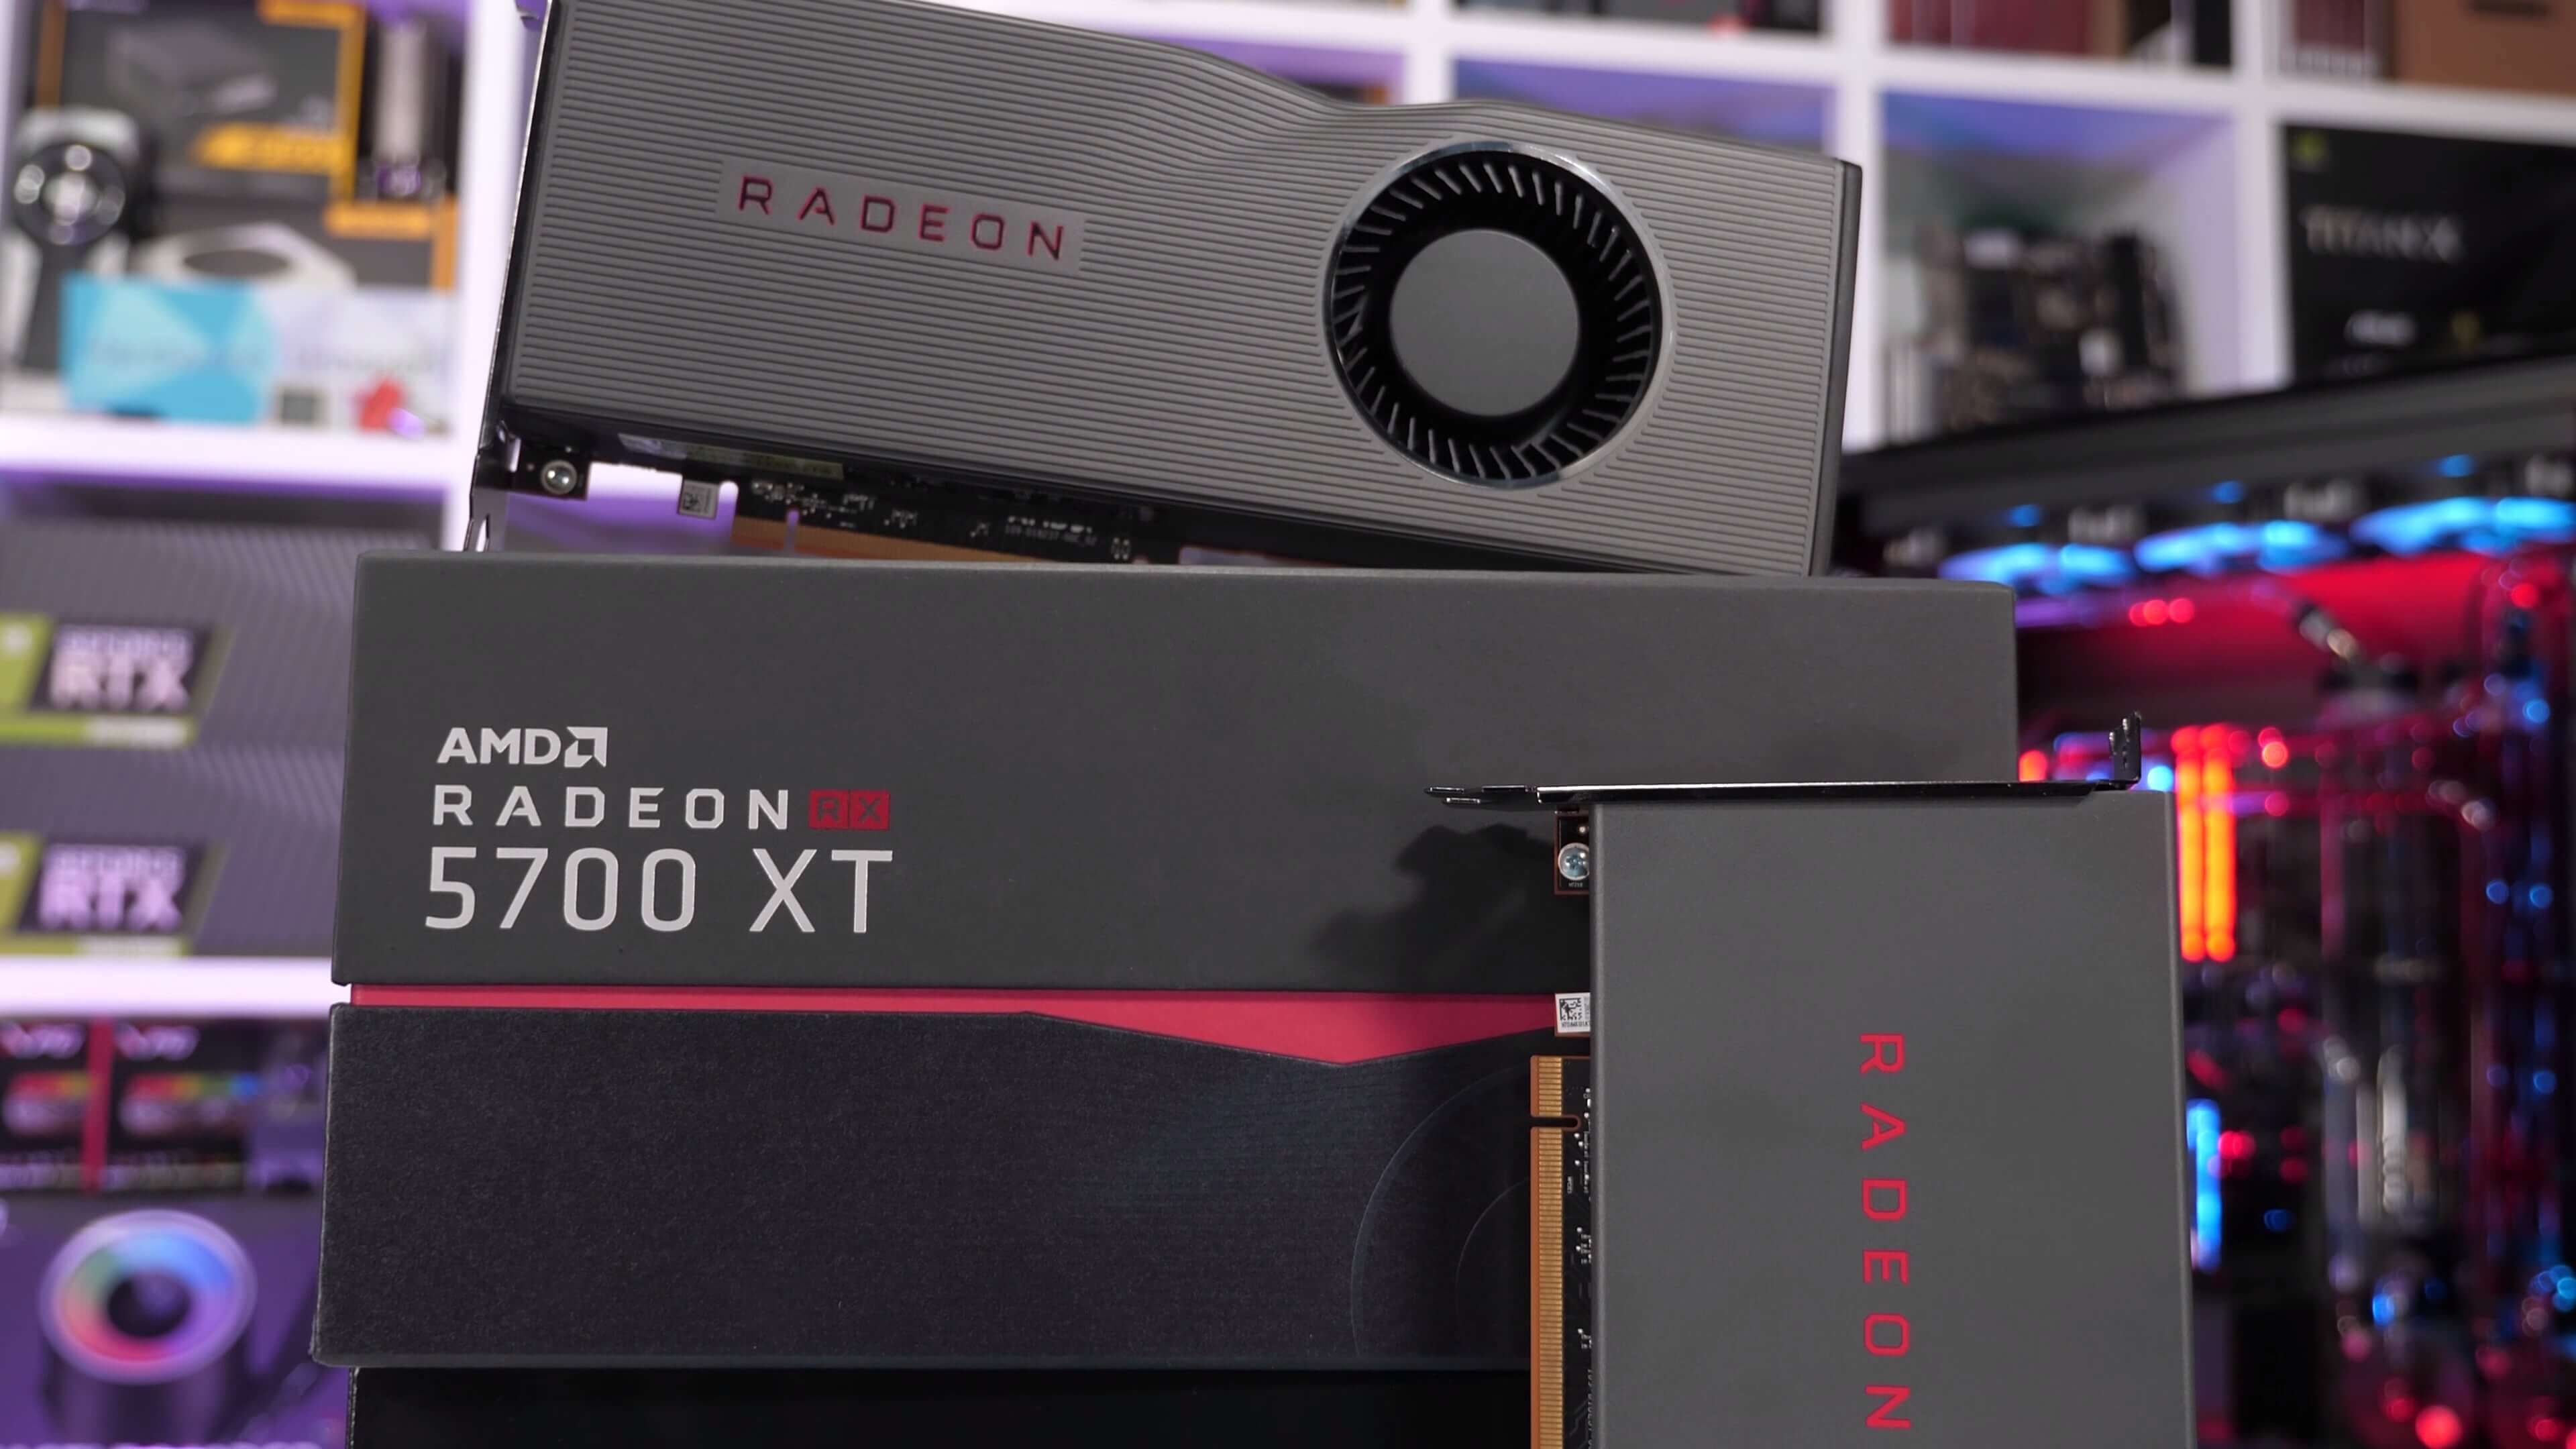 AMD Radeon RX 5700 XT and RX 5700 Review - TechSpot